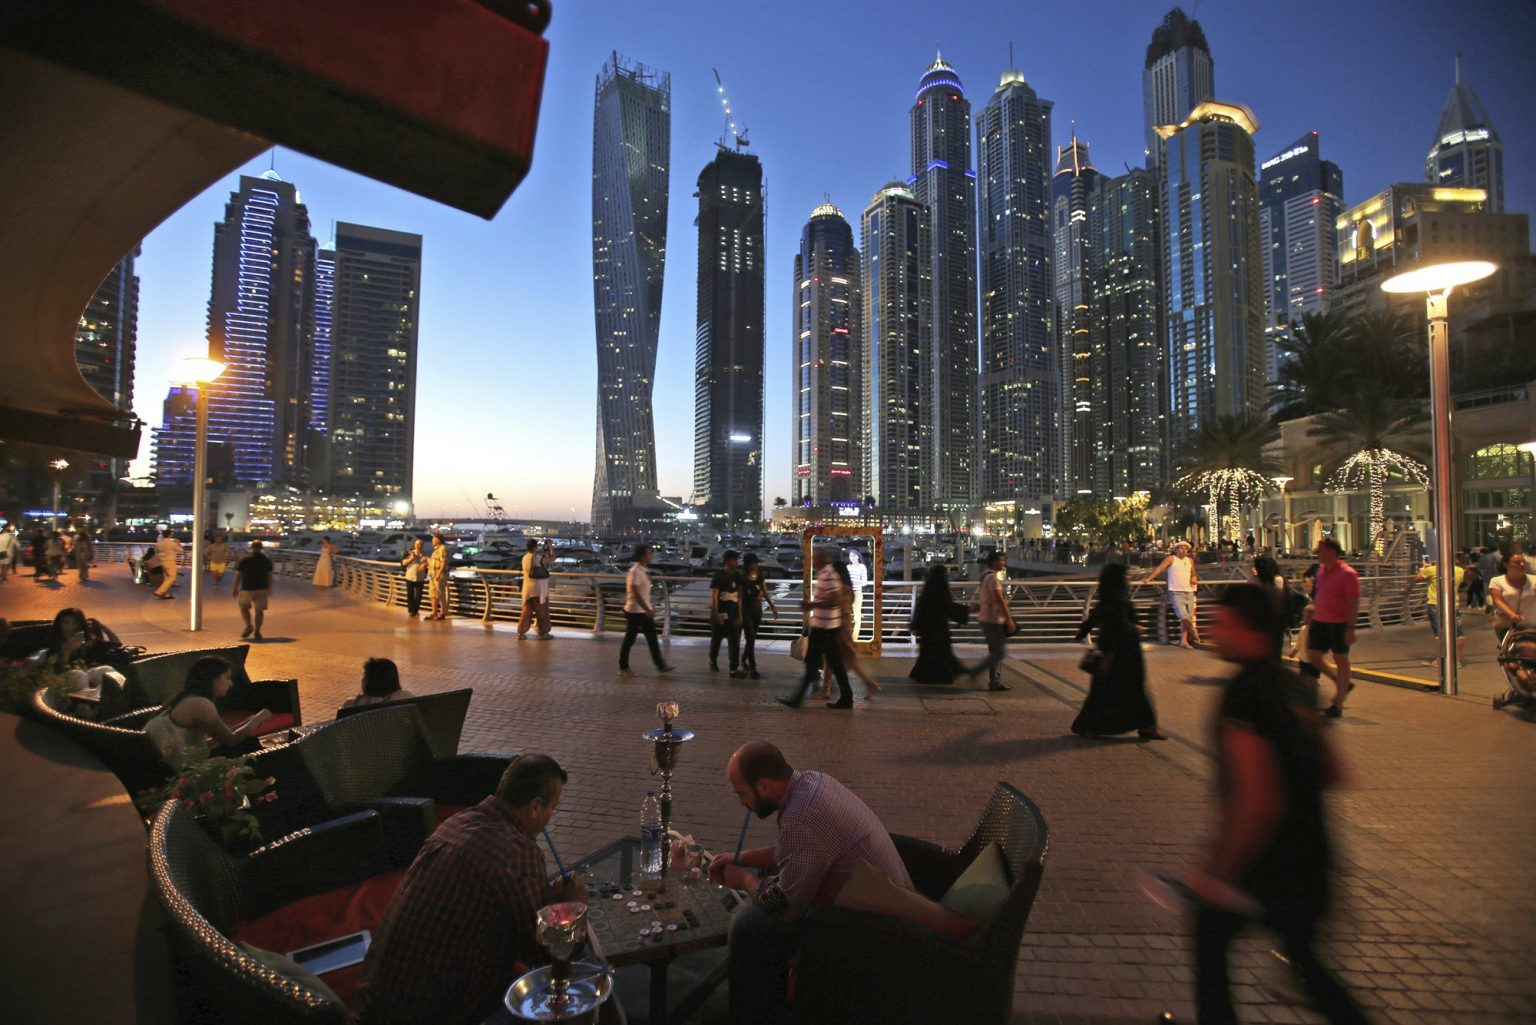 Dubai News: UAE Decriminalises Alcohol And Lifts Ban On Unmarried Couples Living Together